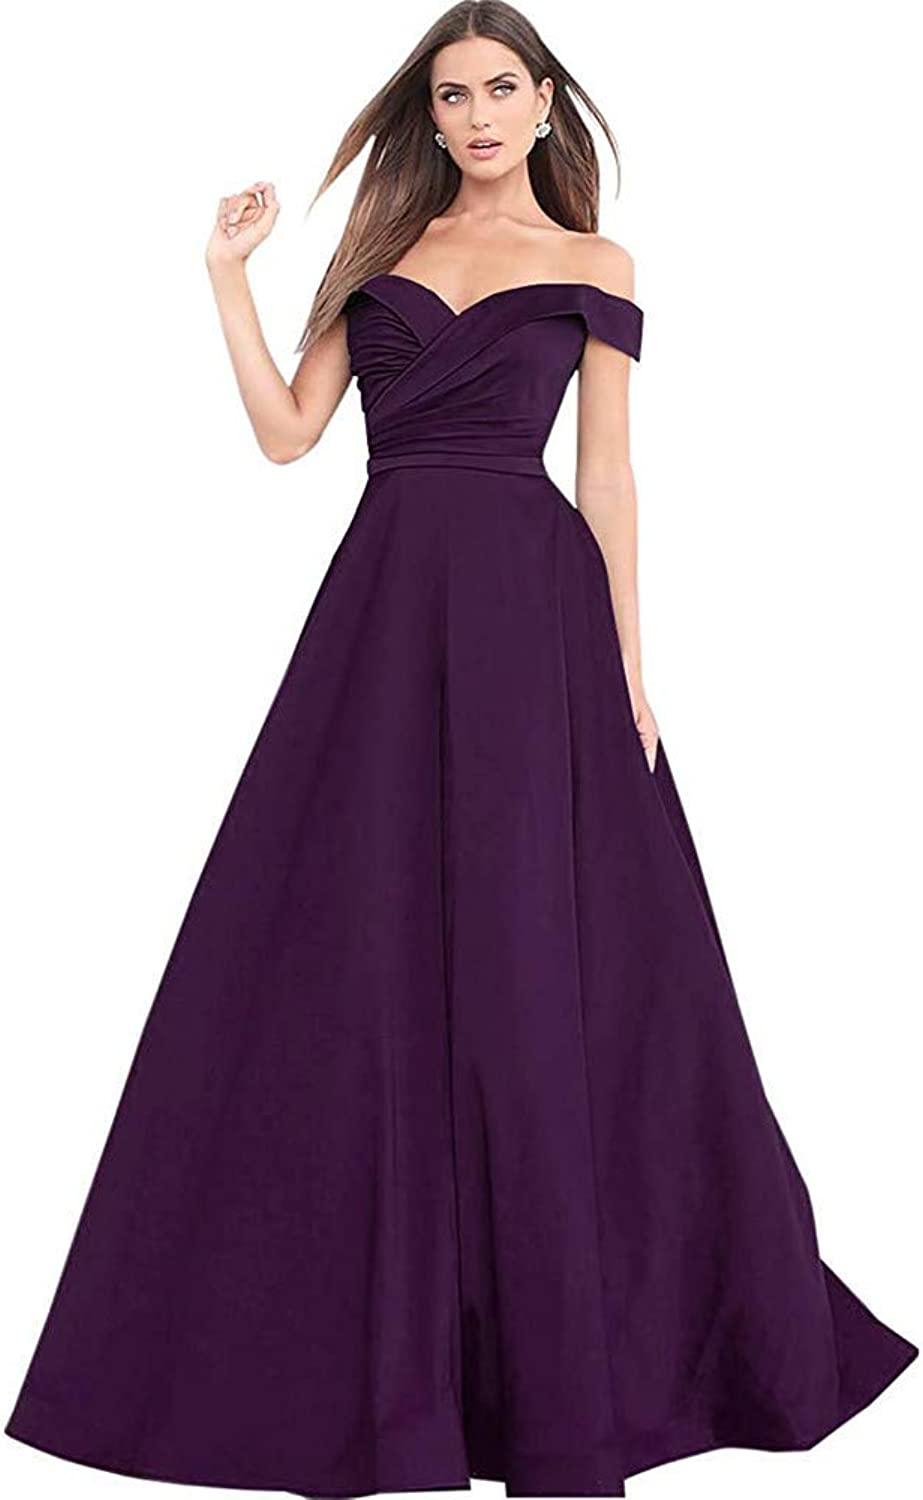 Liangjinsmkj Prom Dresses 2019 Off The Shoulder Satin Sweetheart Aline Formal Evening Gown with Pockets